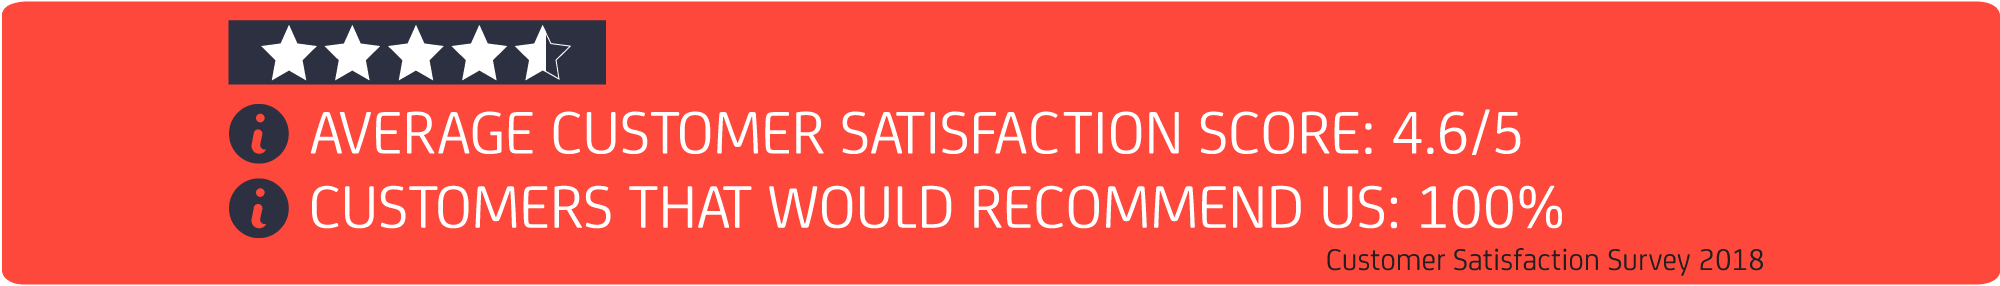 Average customer satisfaction score